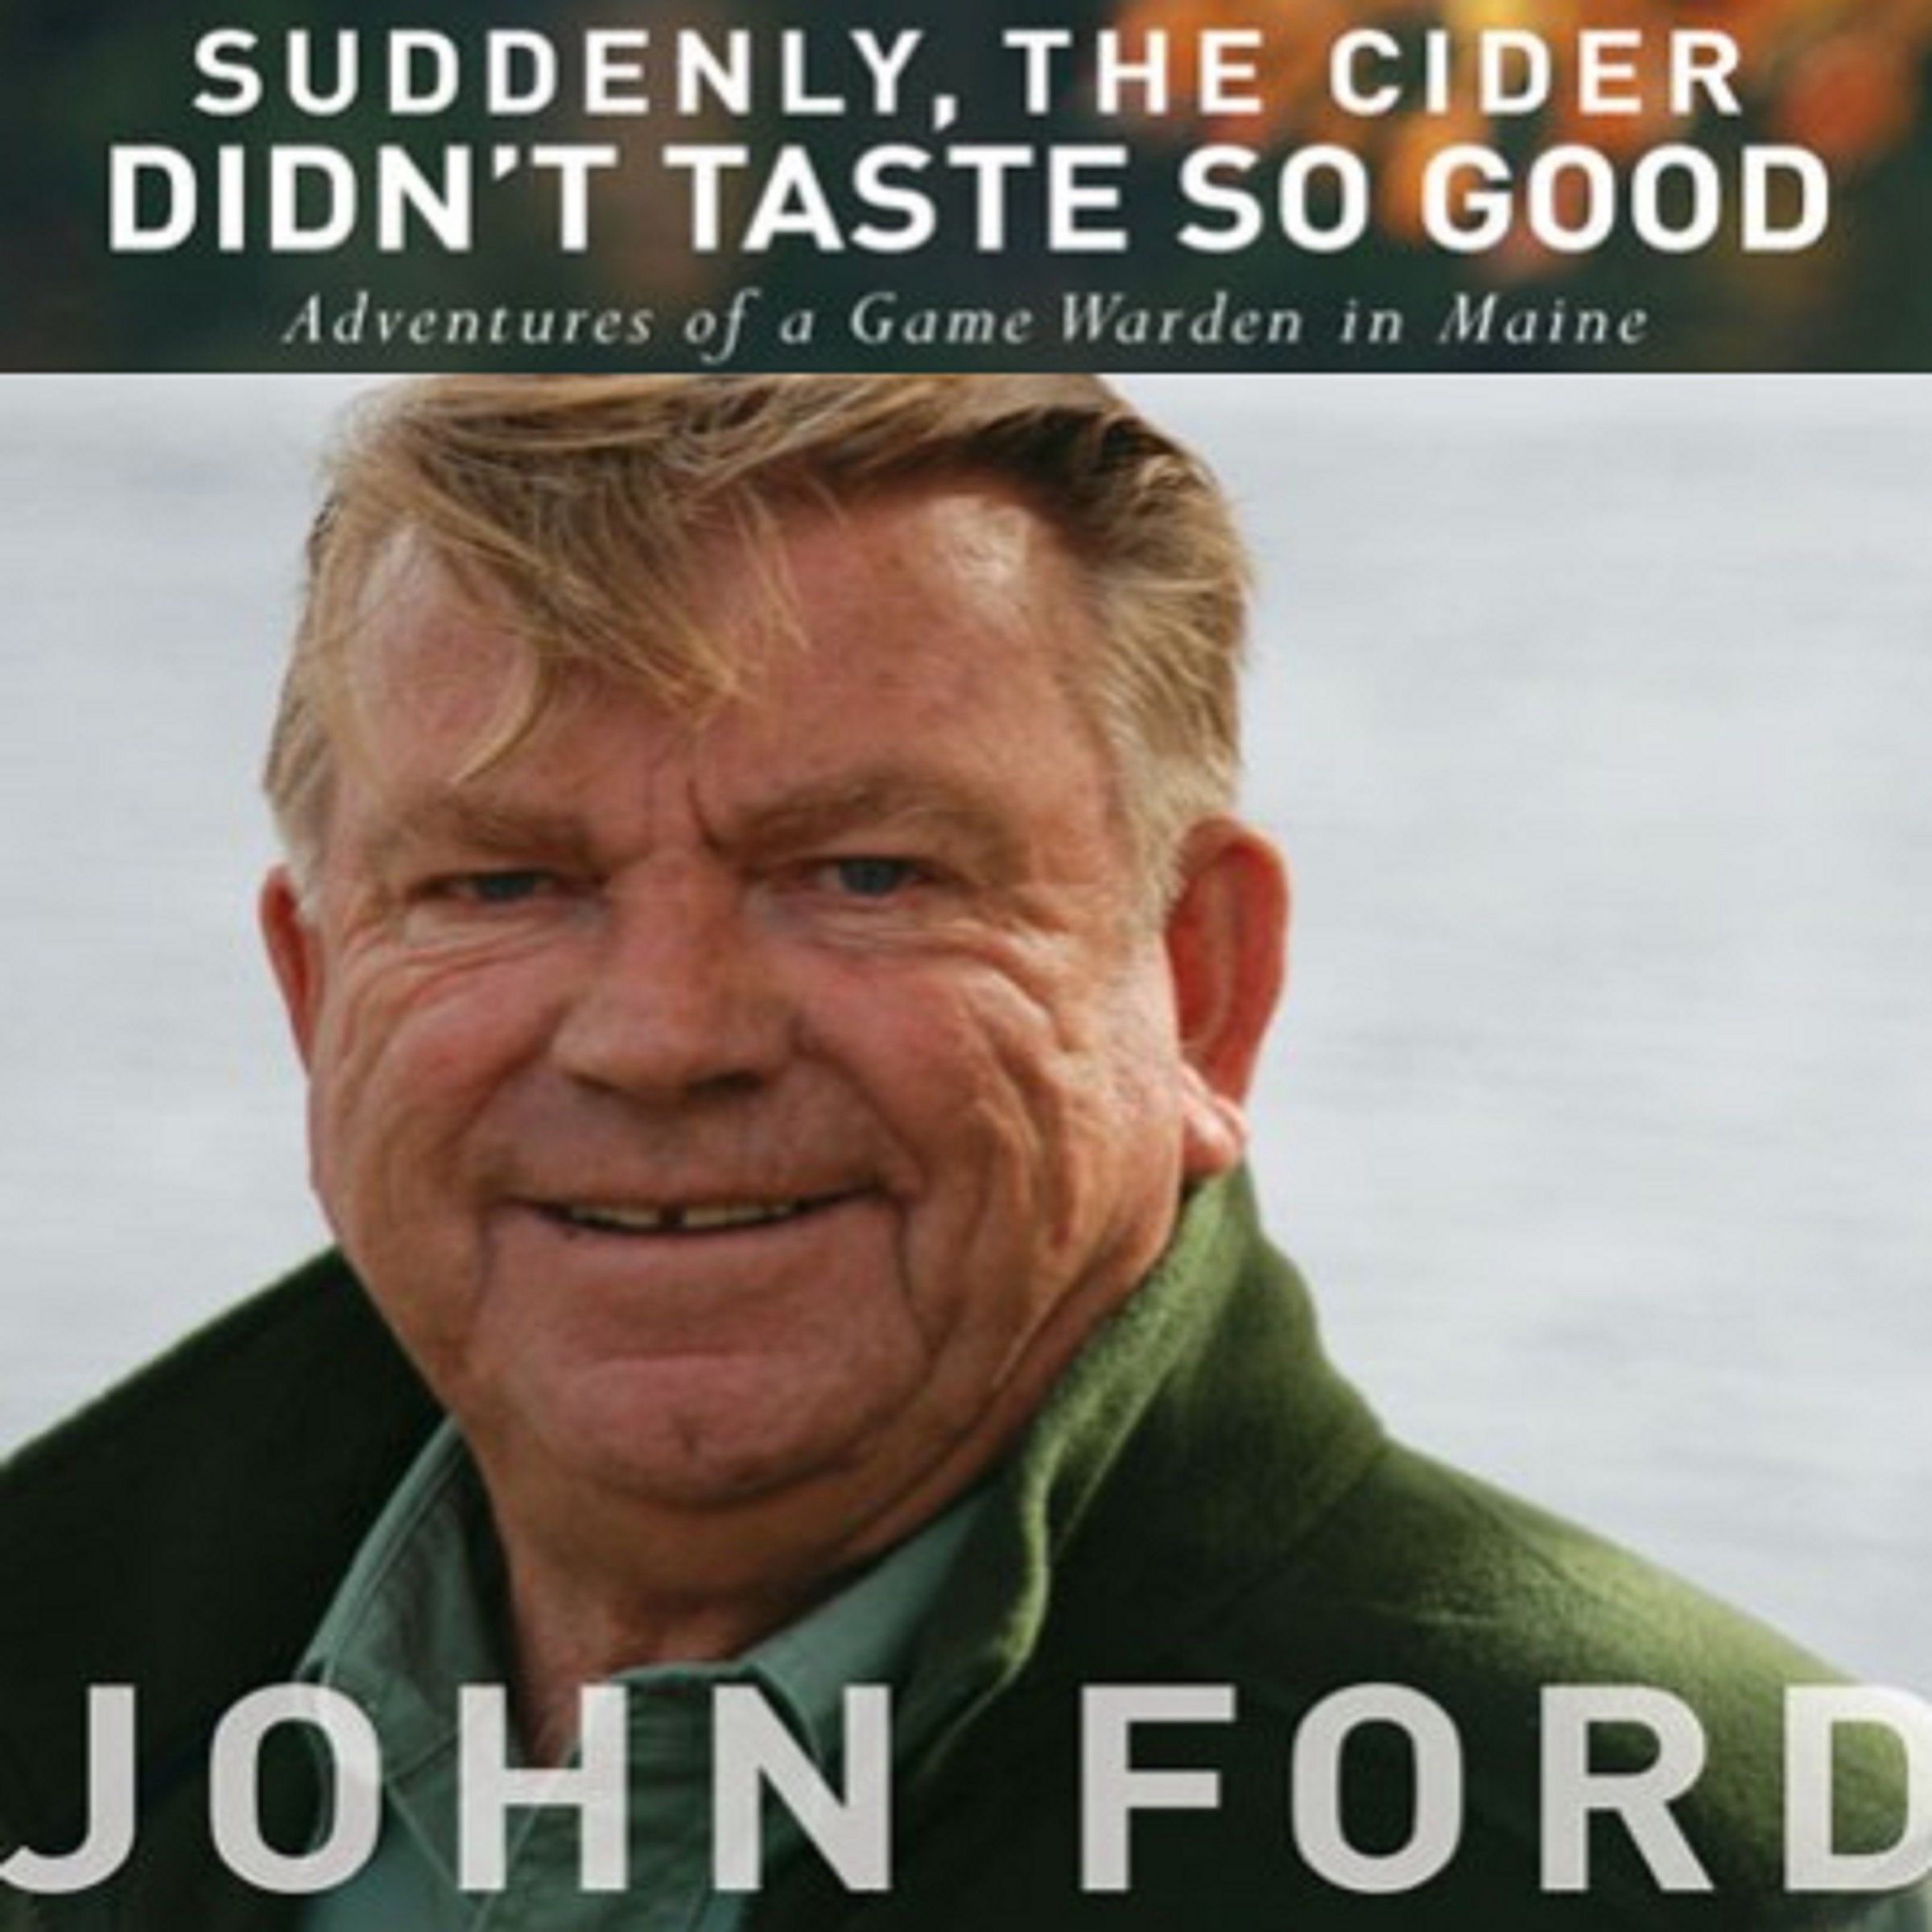 Suddenly, the Cider Didn't Taste So Good: Adventures of a Game Warden in Maine